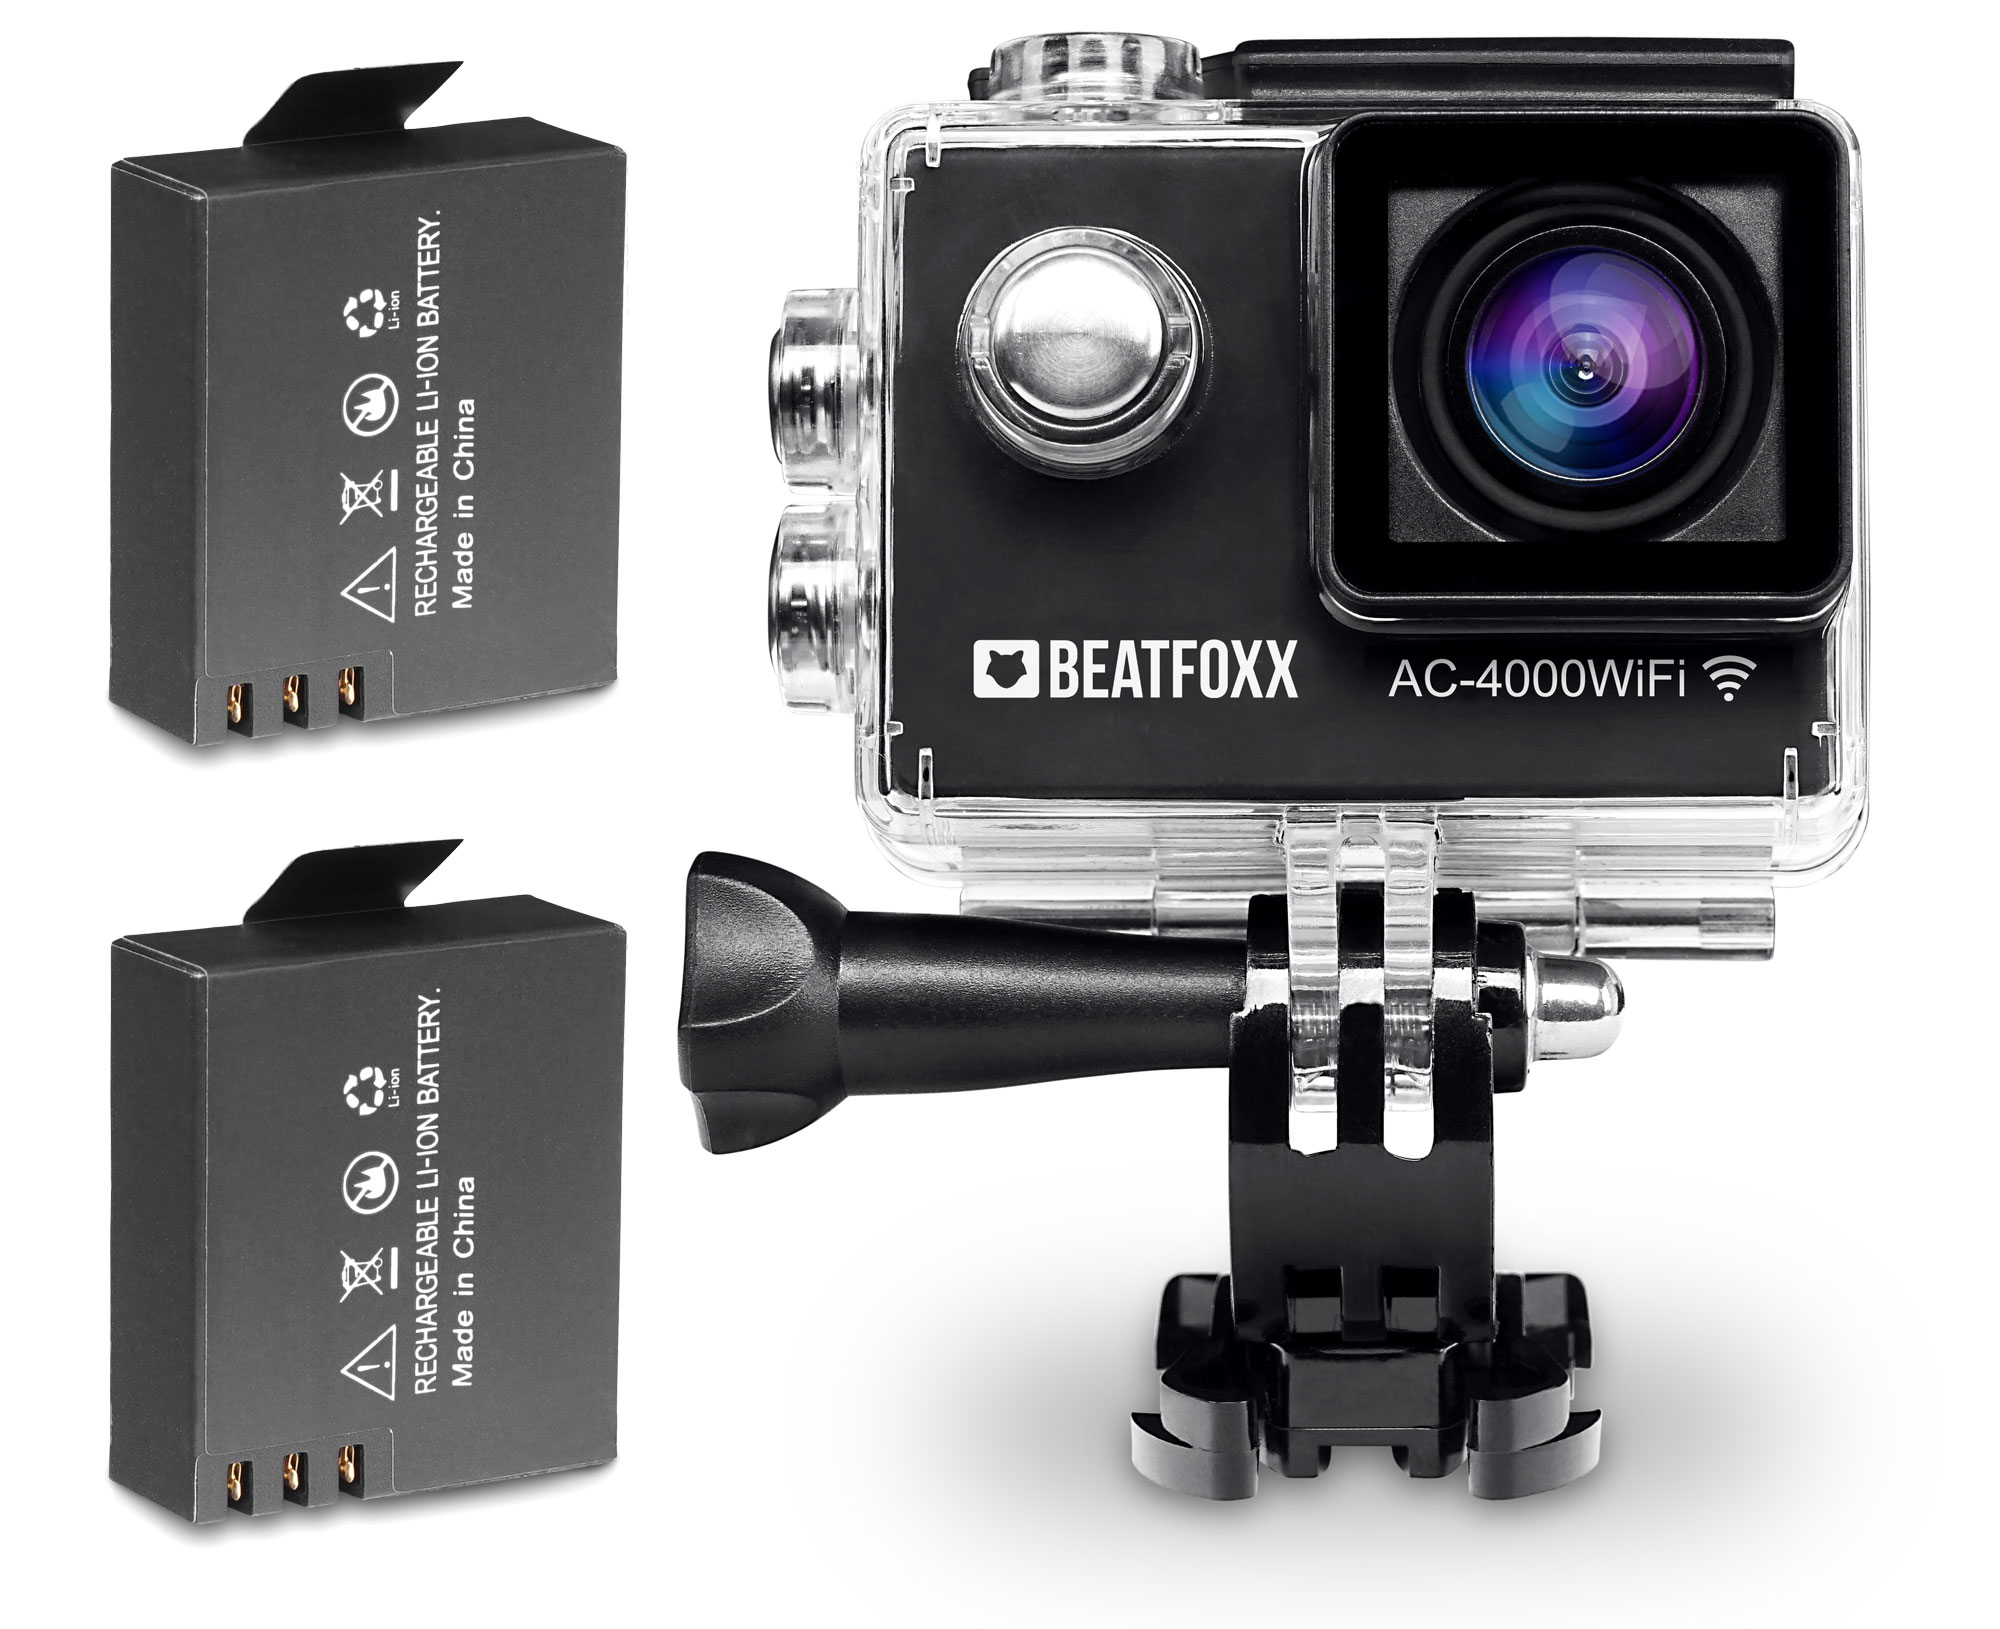 Beatfoxx AC-4000WiFi Action Camera Full HD 12 MP HDMI SD incl  2 Batteries